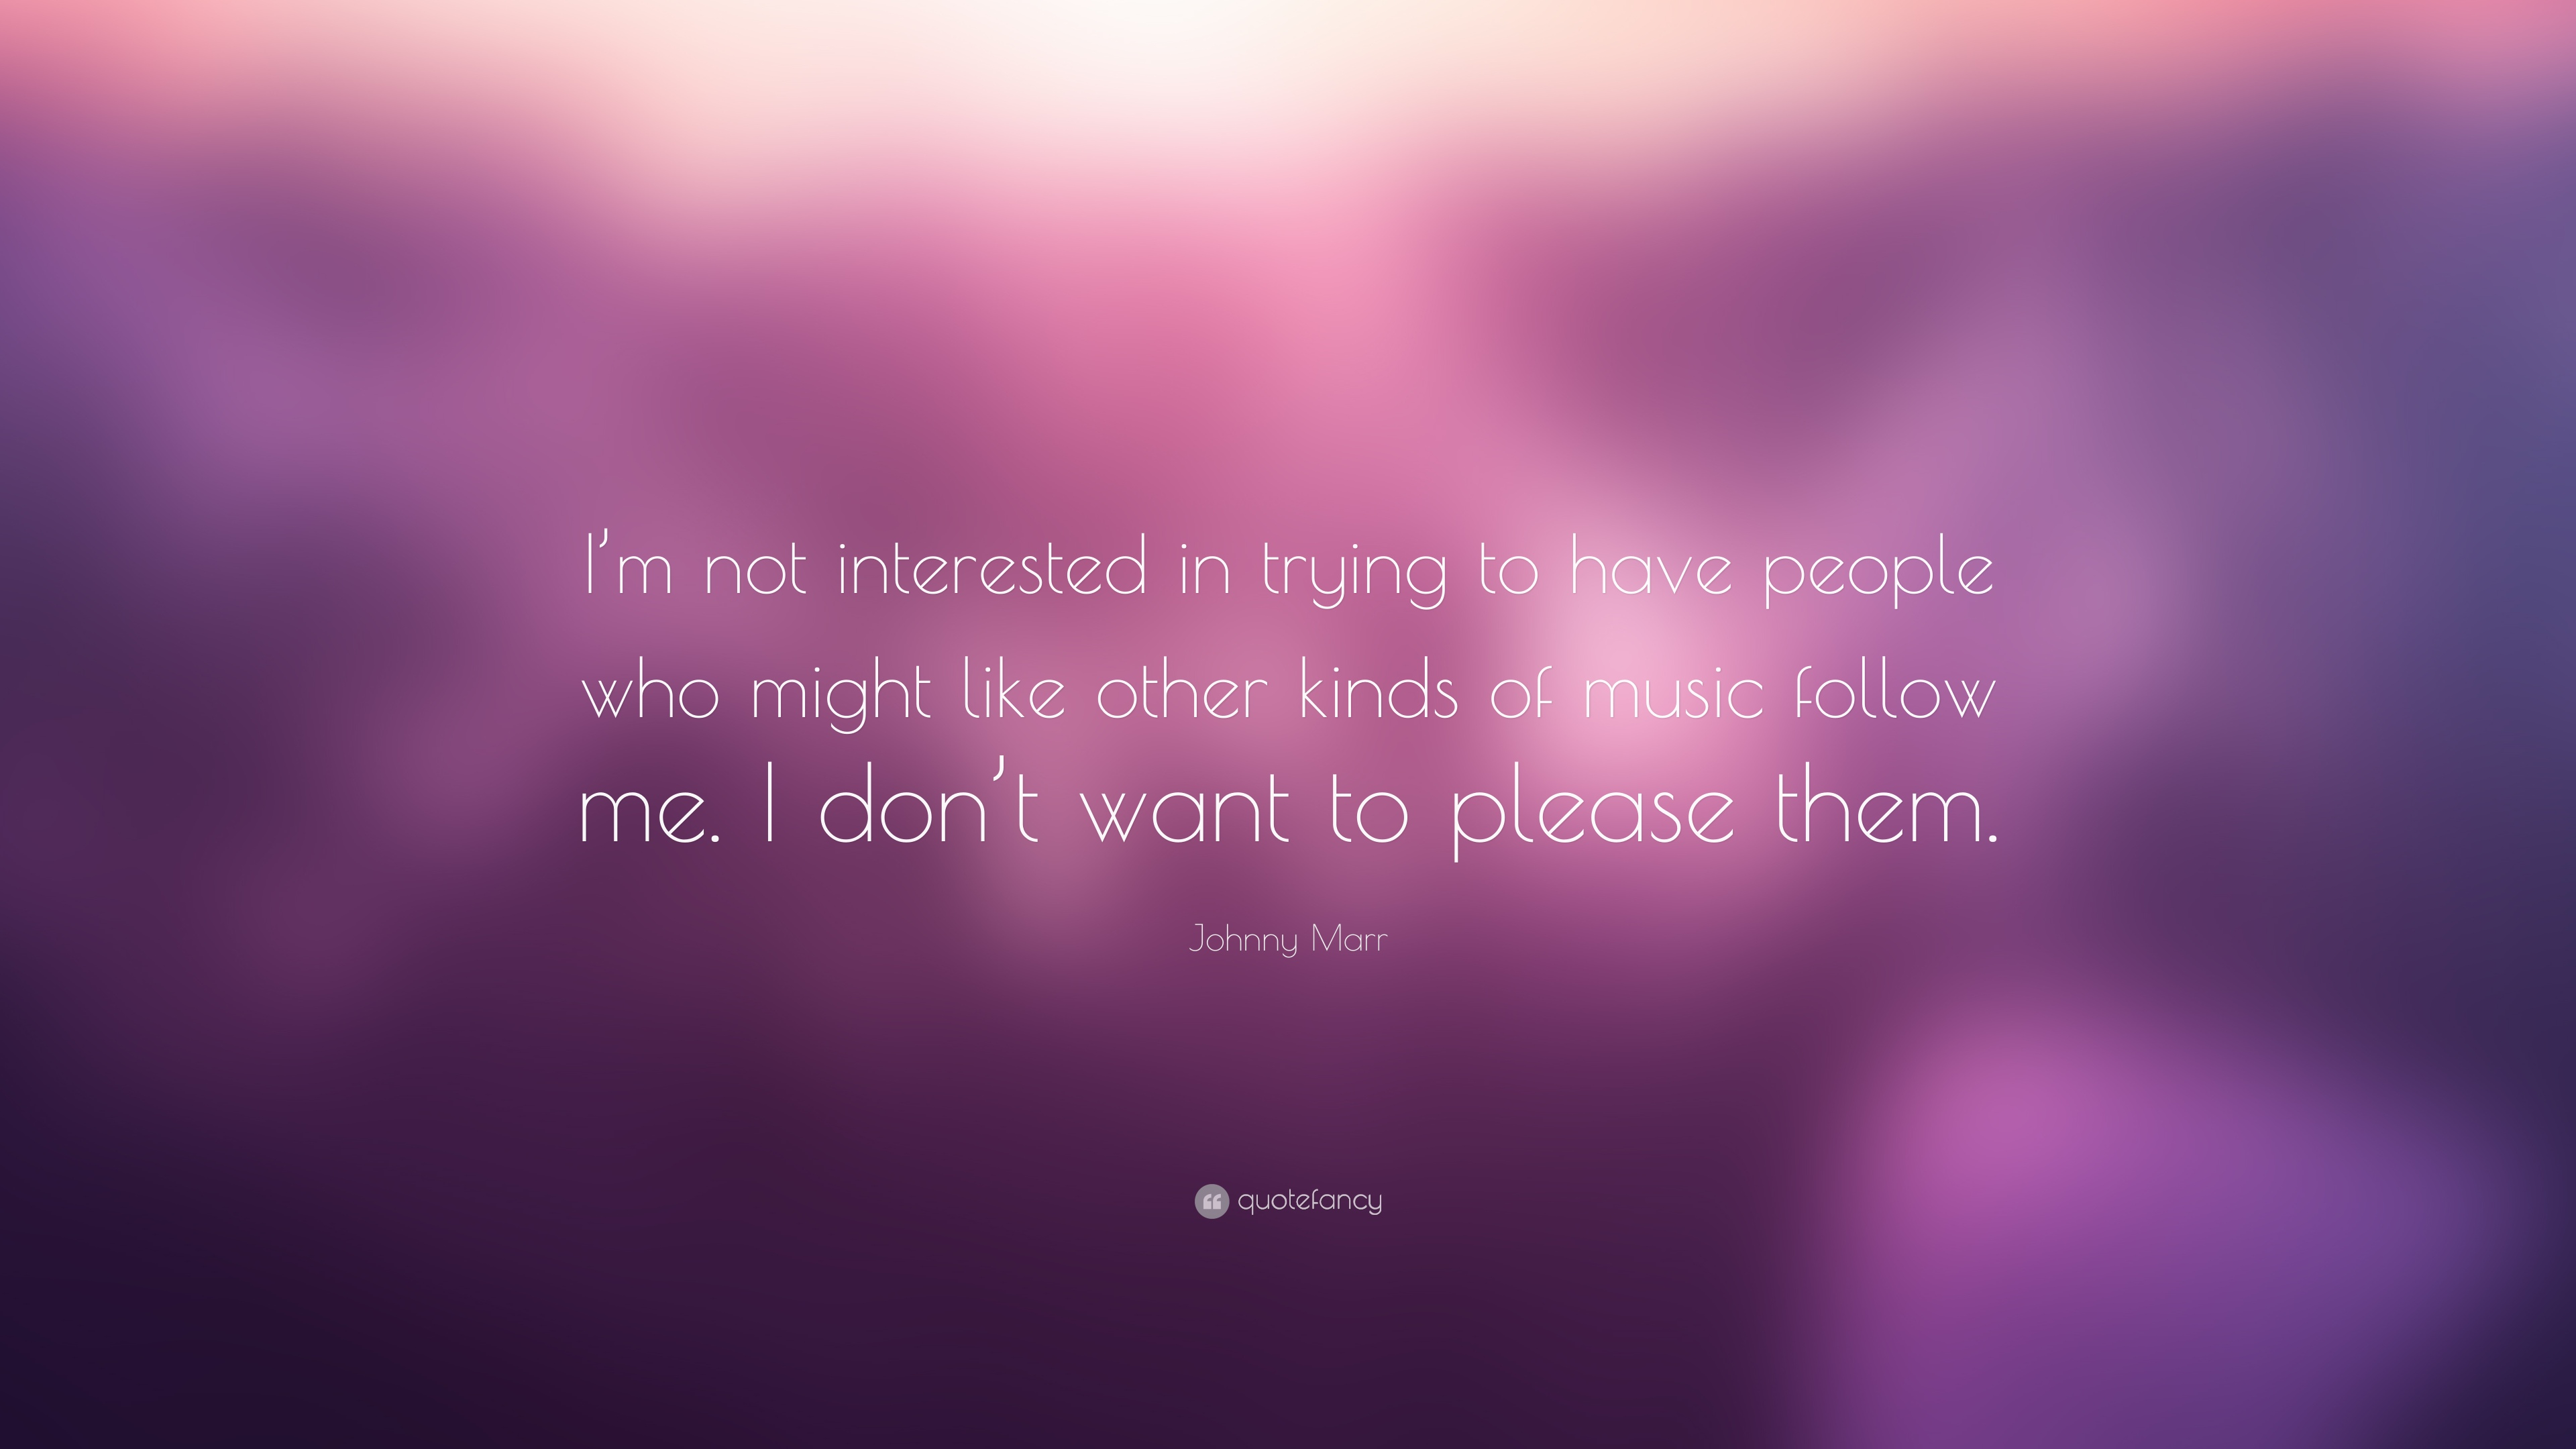 johnny marr quotes quotefancy johnny marr quote i m not interested in trying to have people who